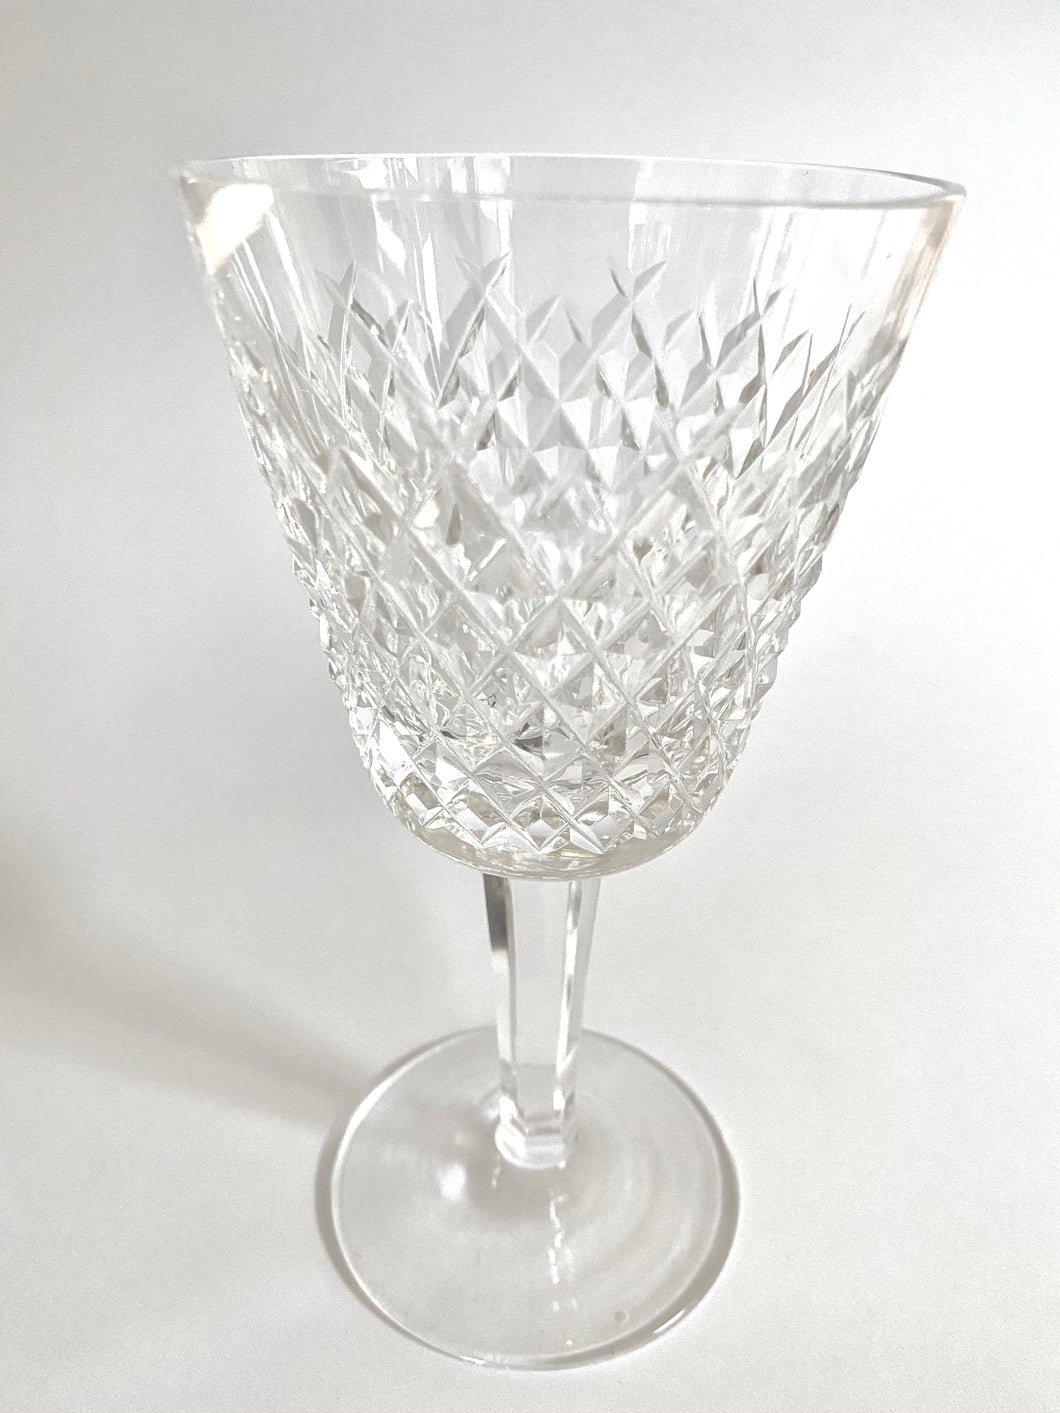 Set of 6 Waterford Wine Glasses in the Alana Pattern